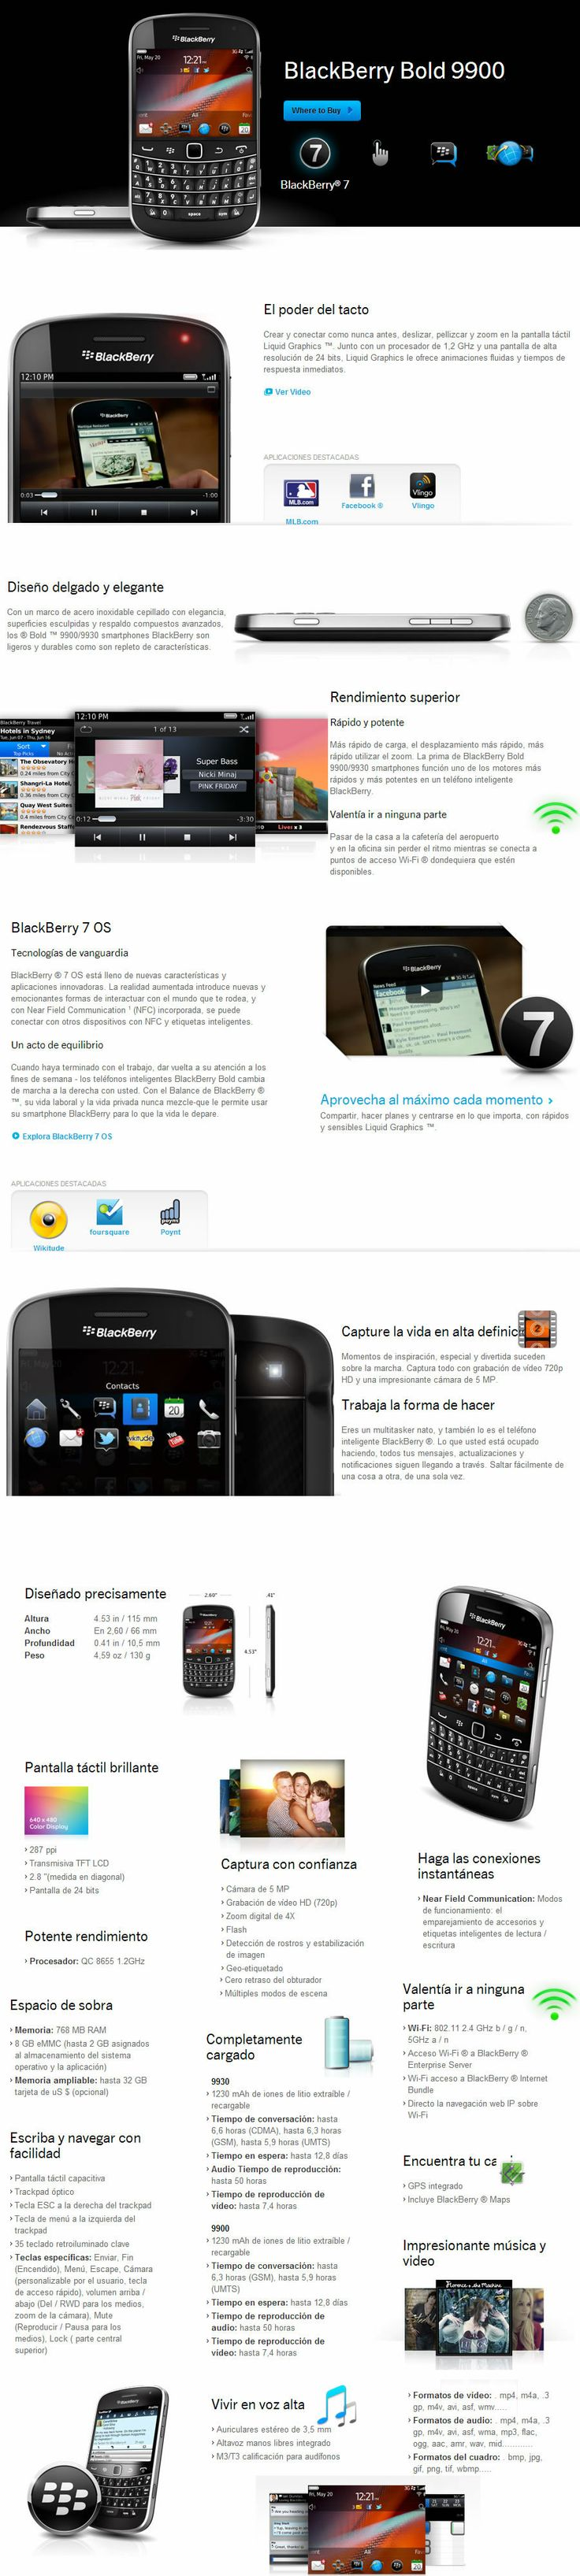 34 best blackberry images on pinterest blackberry 9900 precio blackberry 9900 bold liberado argentina reheart Choice Image